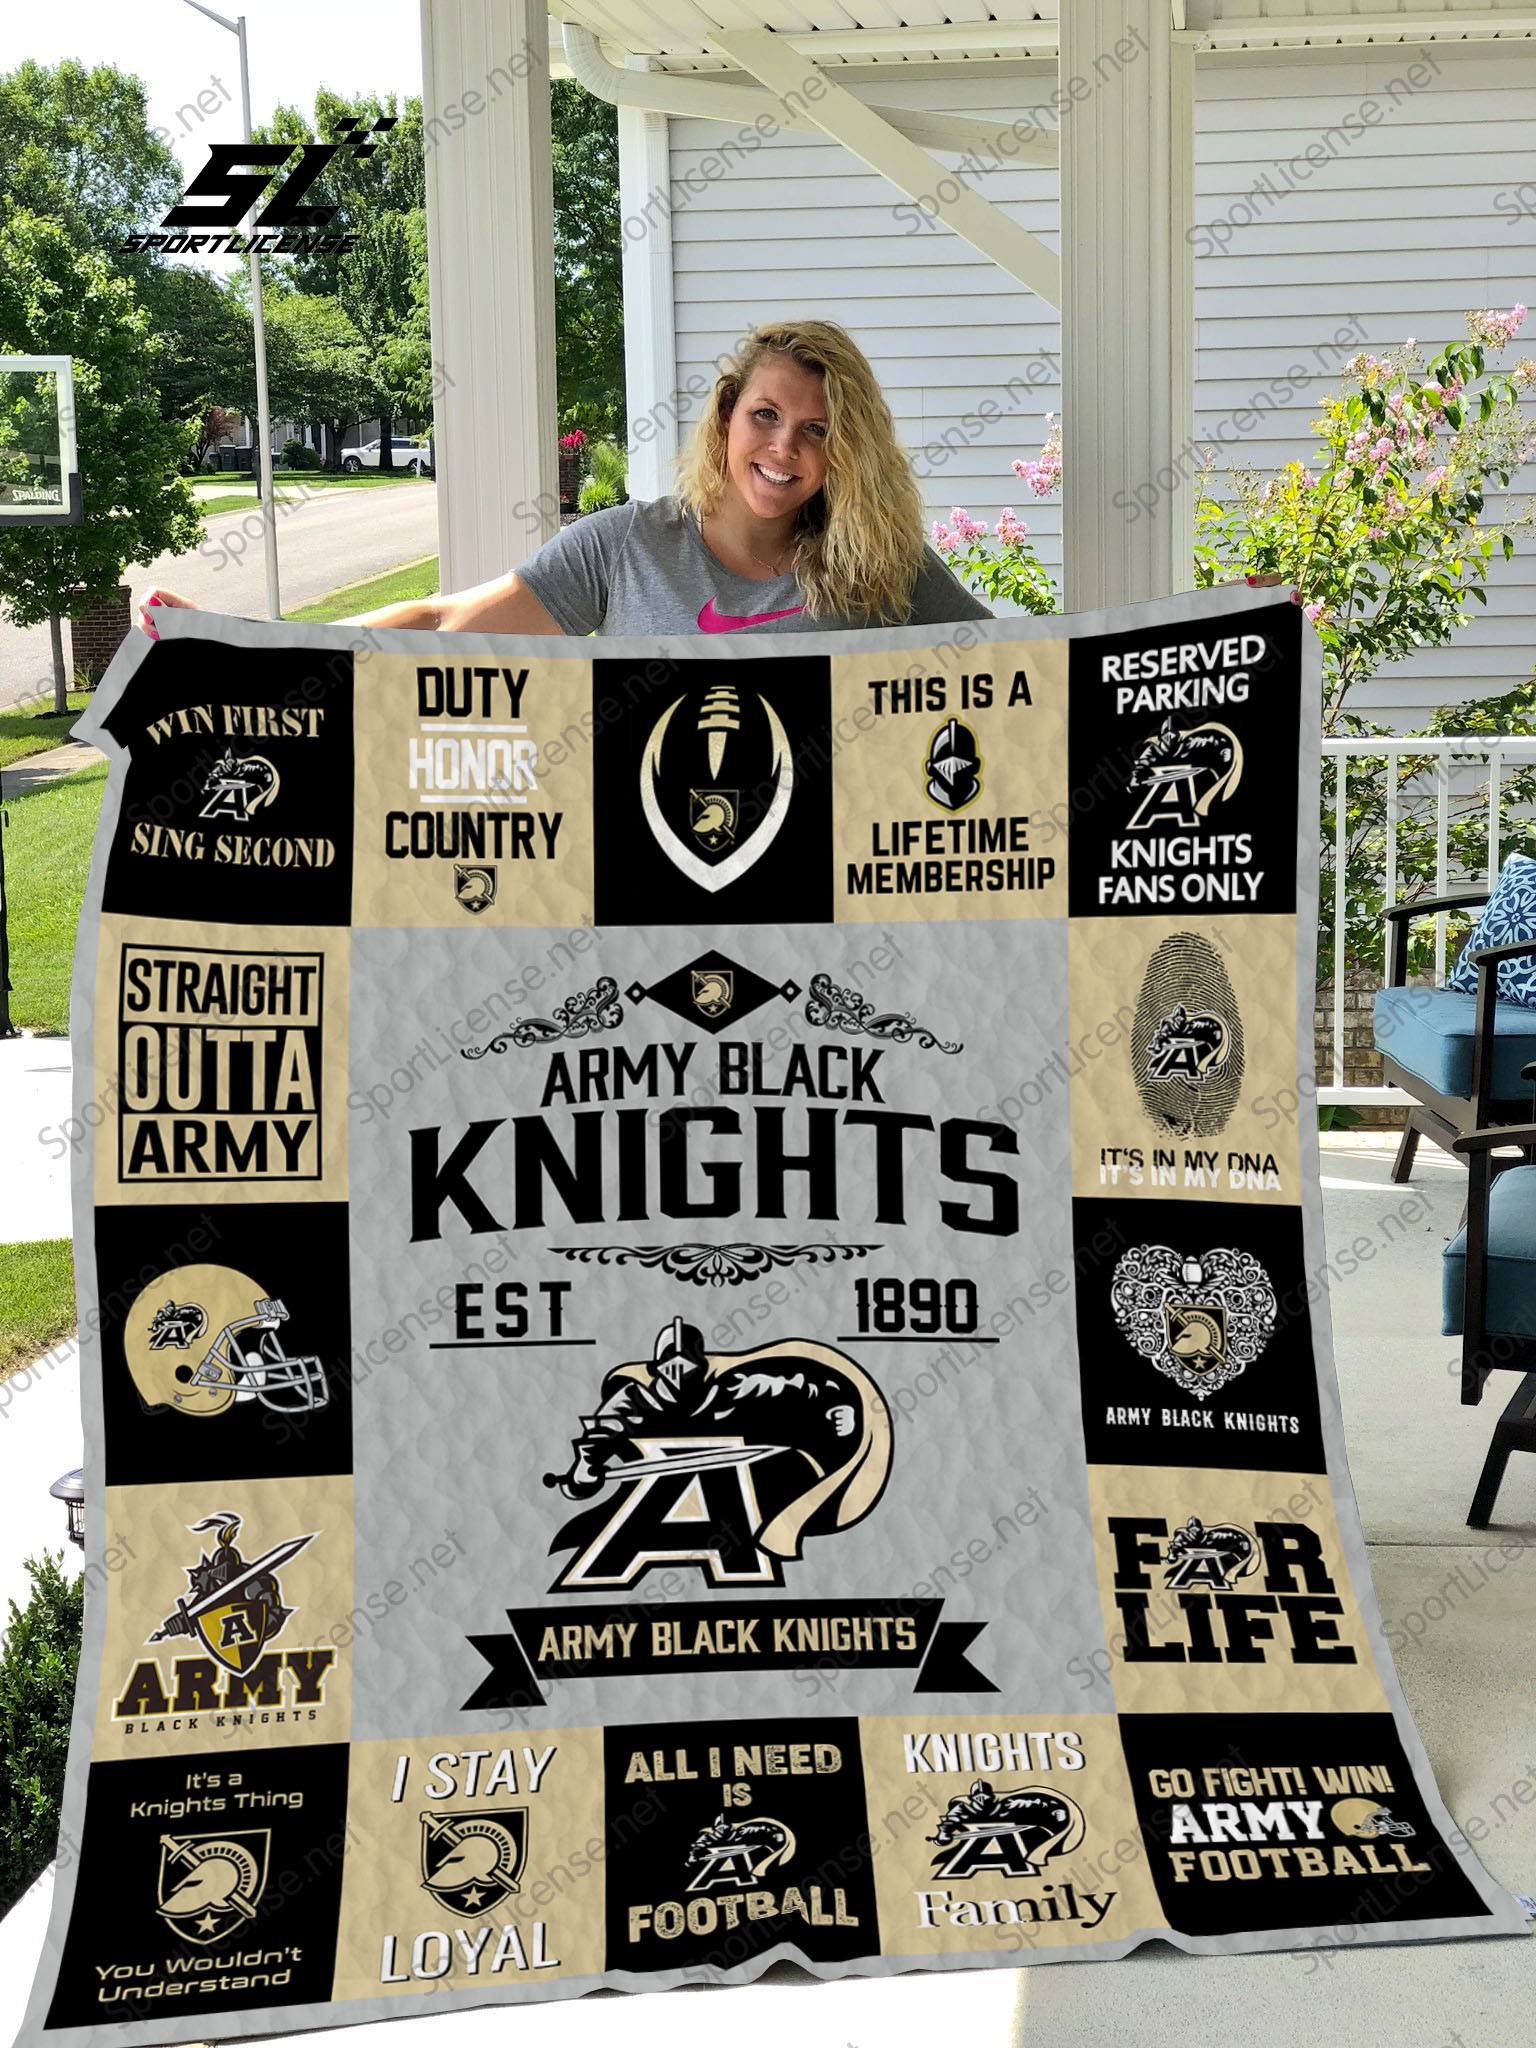 Army black knights quilt 1